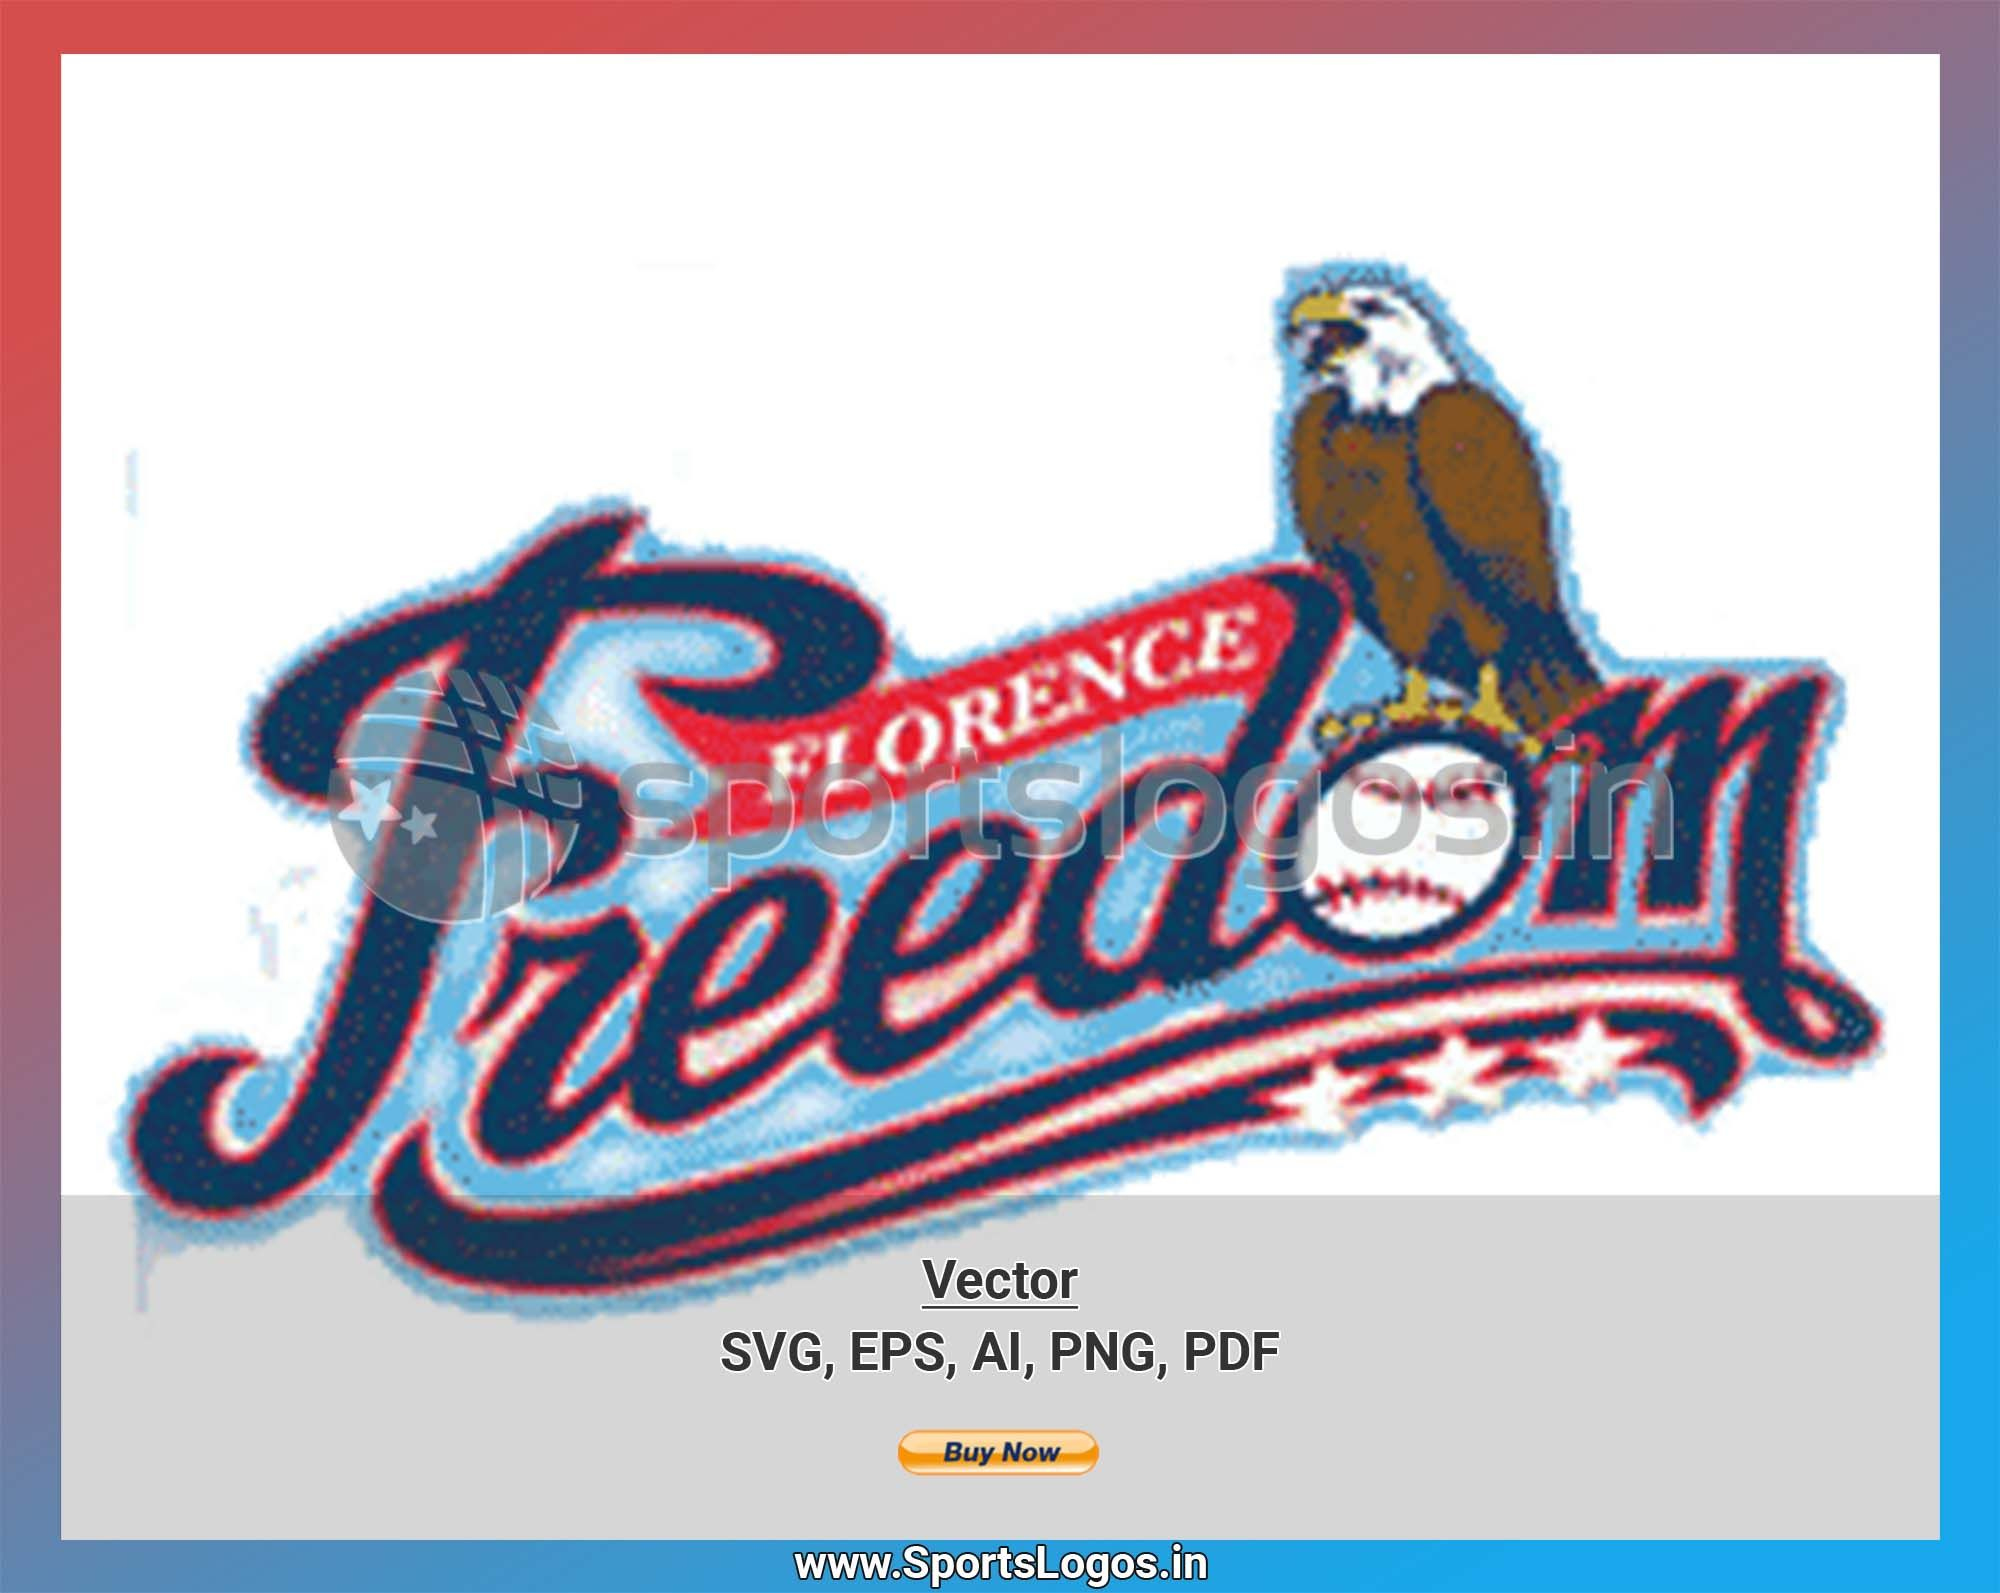 Florence Freedom Baseball Sports Vector Svg Logo In 5 Formats Spln001486 Sports Logos Embroidery Vector For Nfl Nba Nhl Mlb Milb And More In 2020 Sports Baseball Sports Logo Embroidery Logo